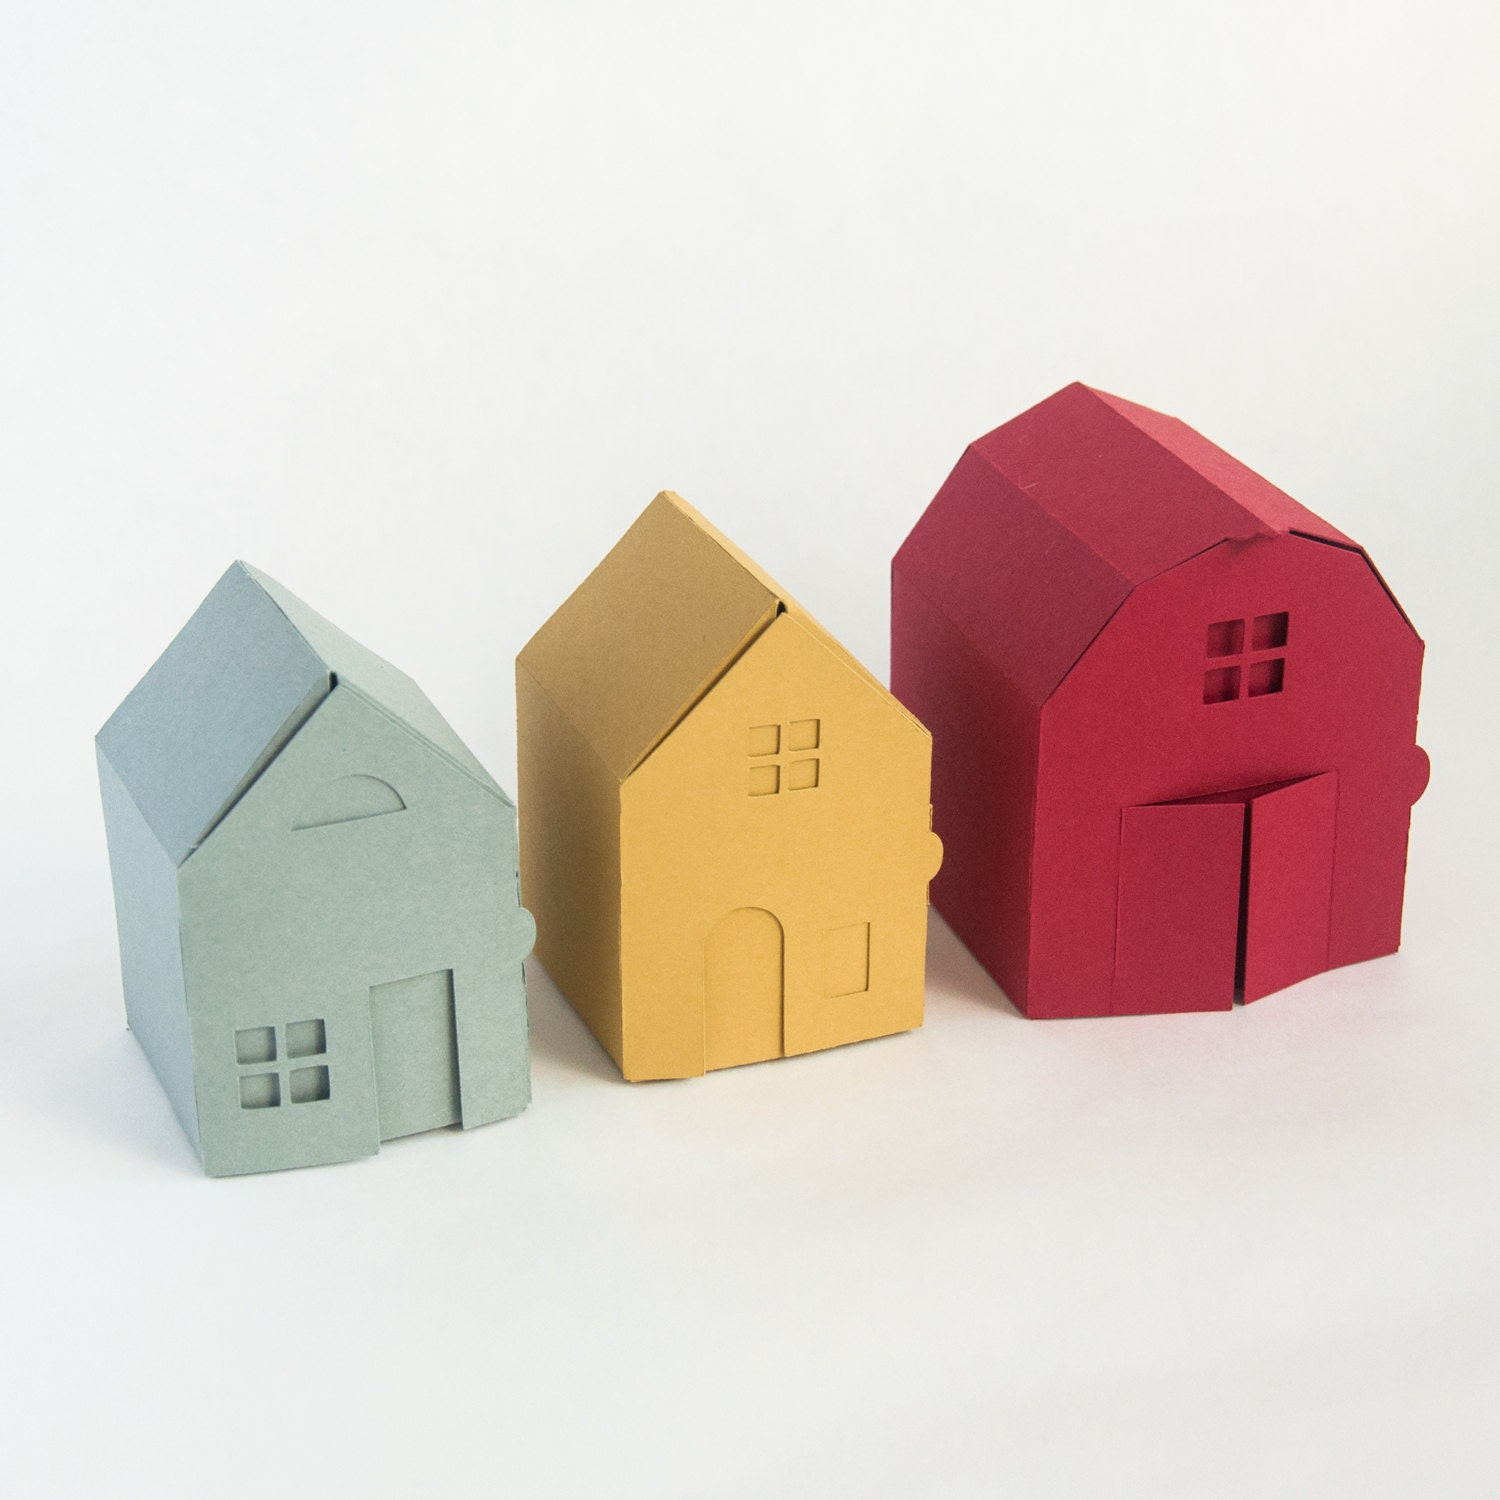 Village Papercraft Kit Make Your Own Tiny Paper Houses By